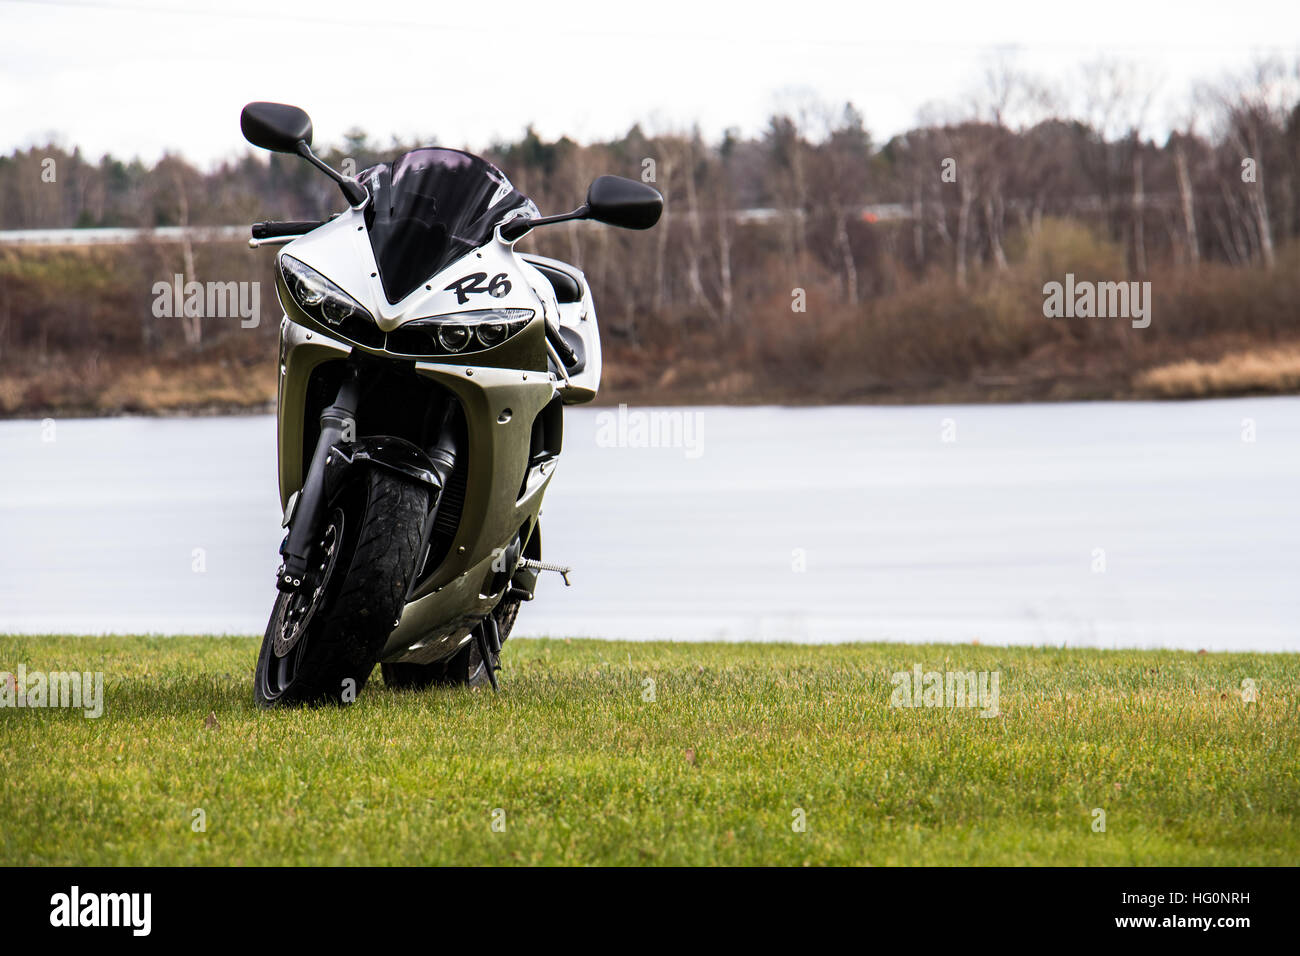 Peaceful motorcycle - Stock Image